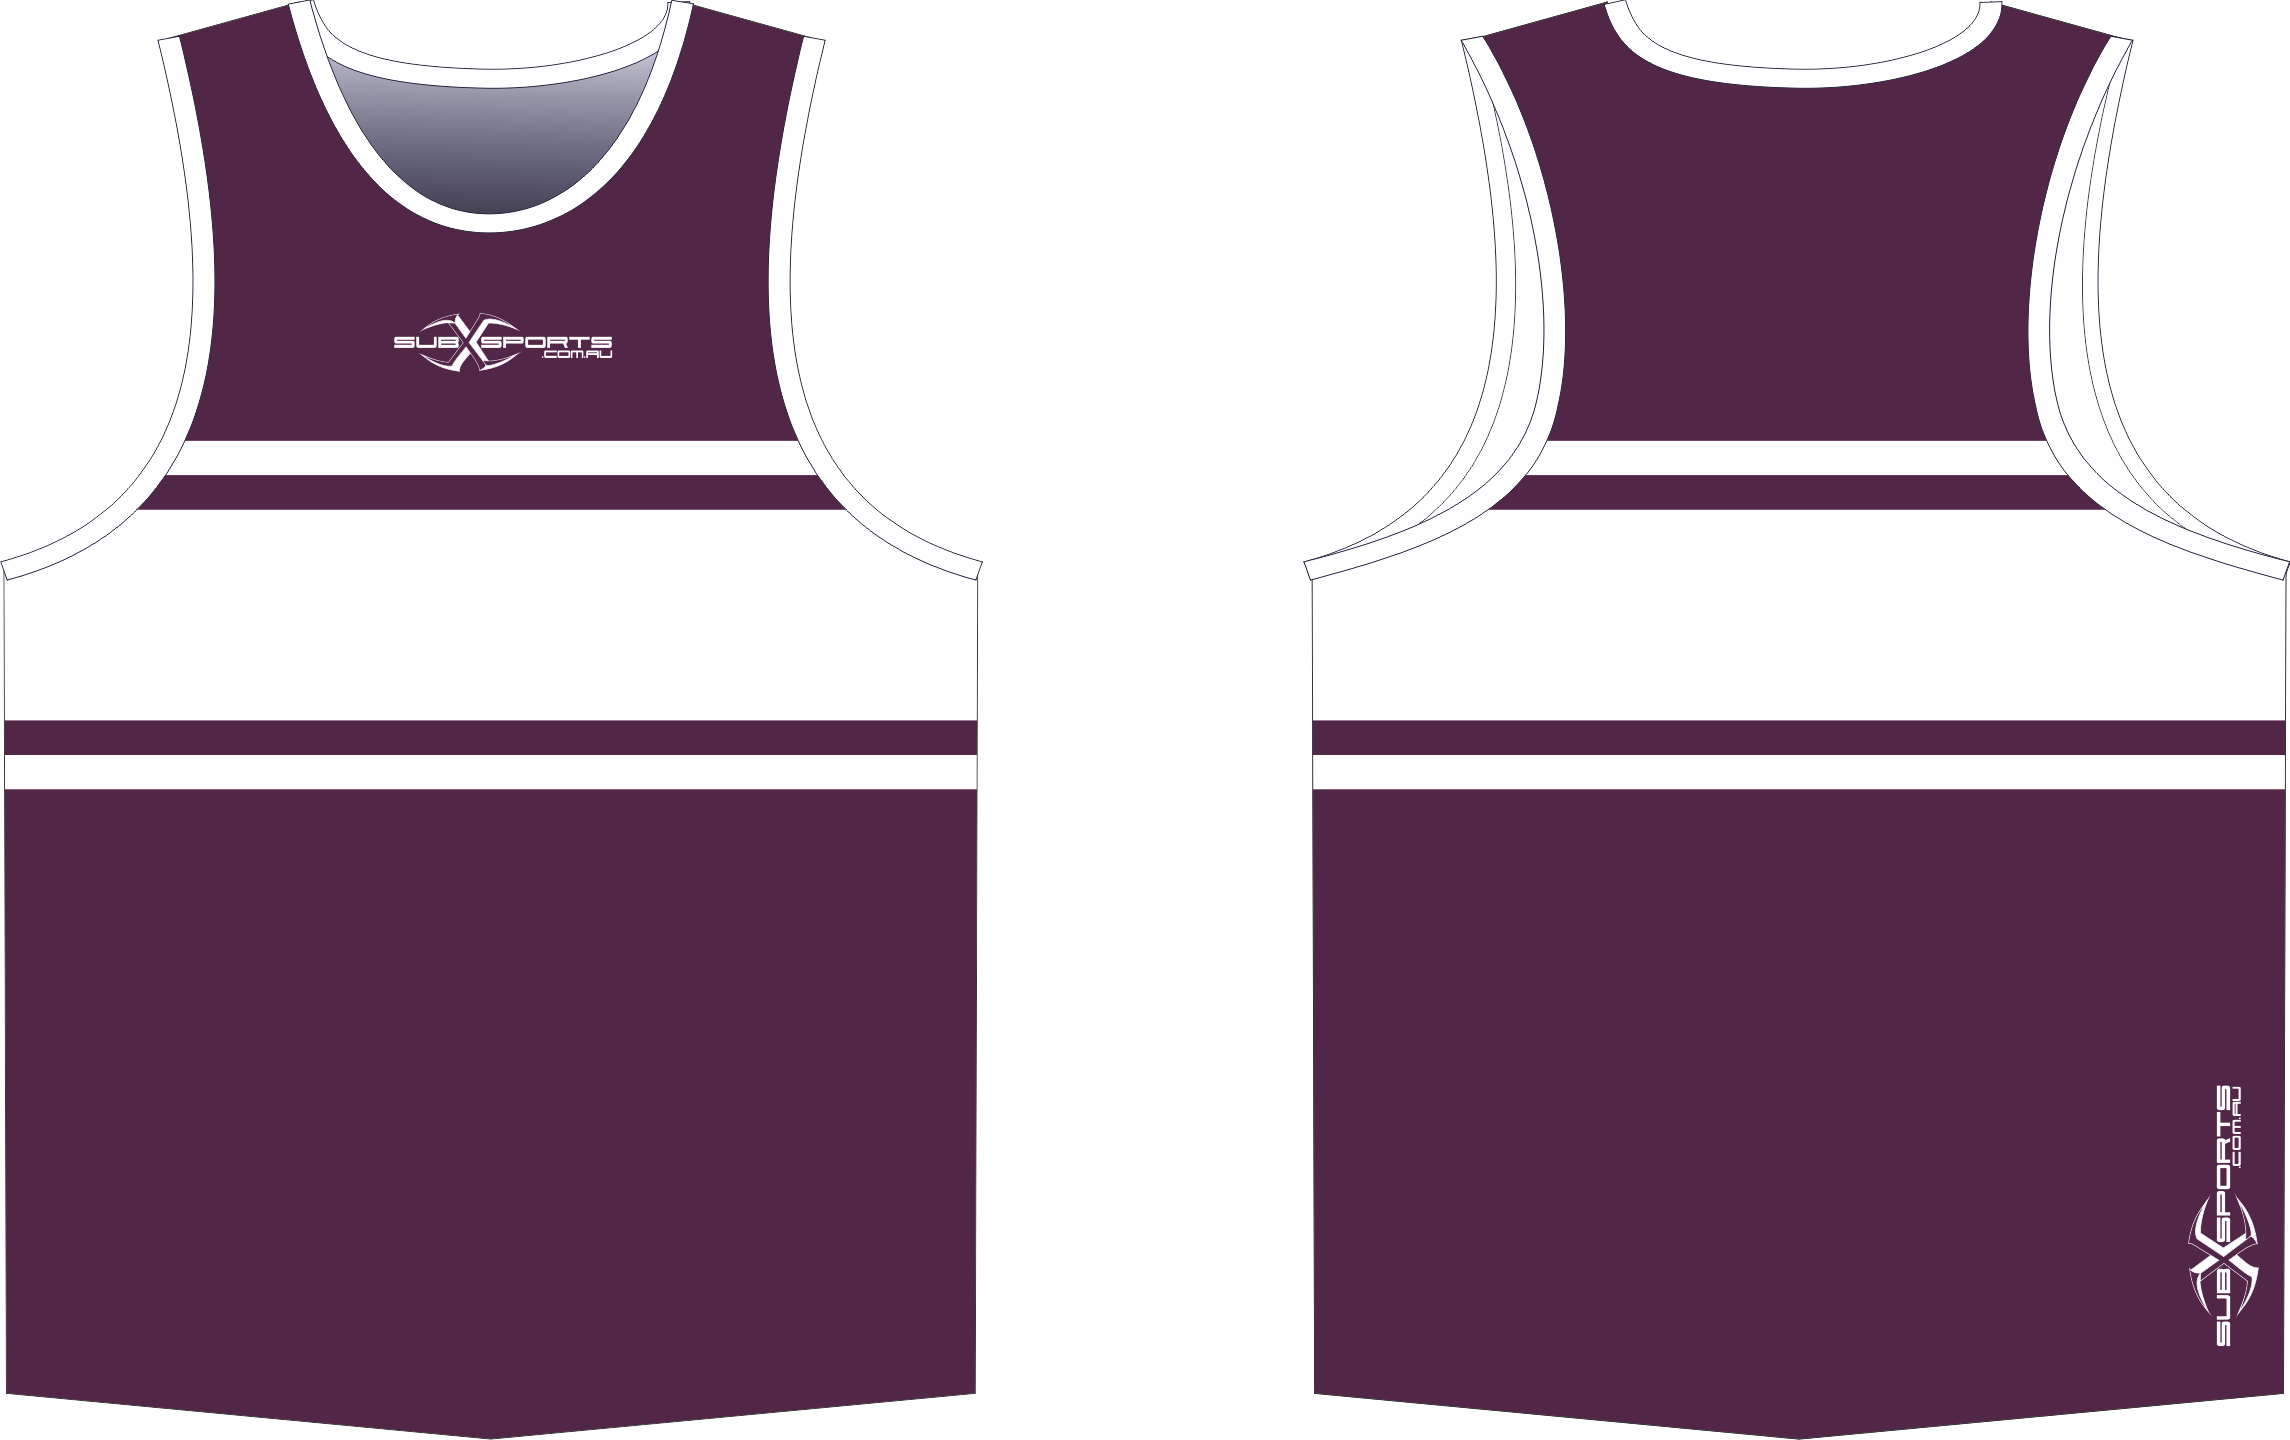 S203XS Sub Singlet Maroon White.png